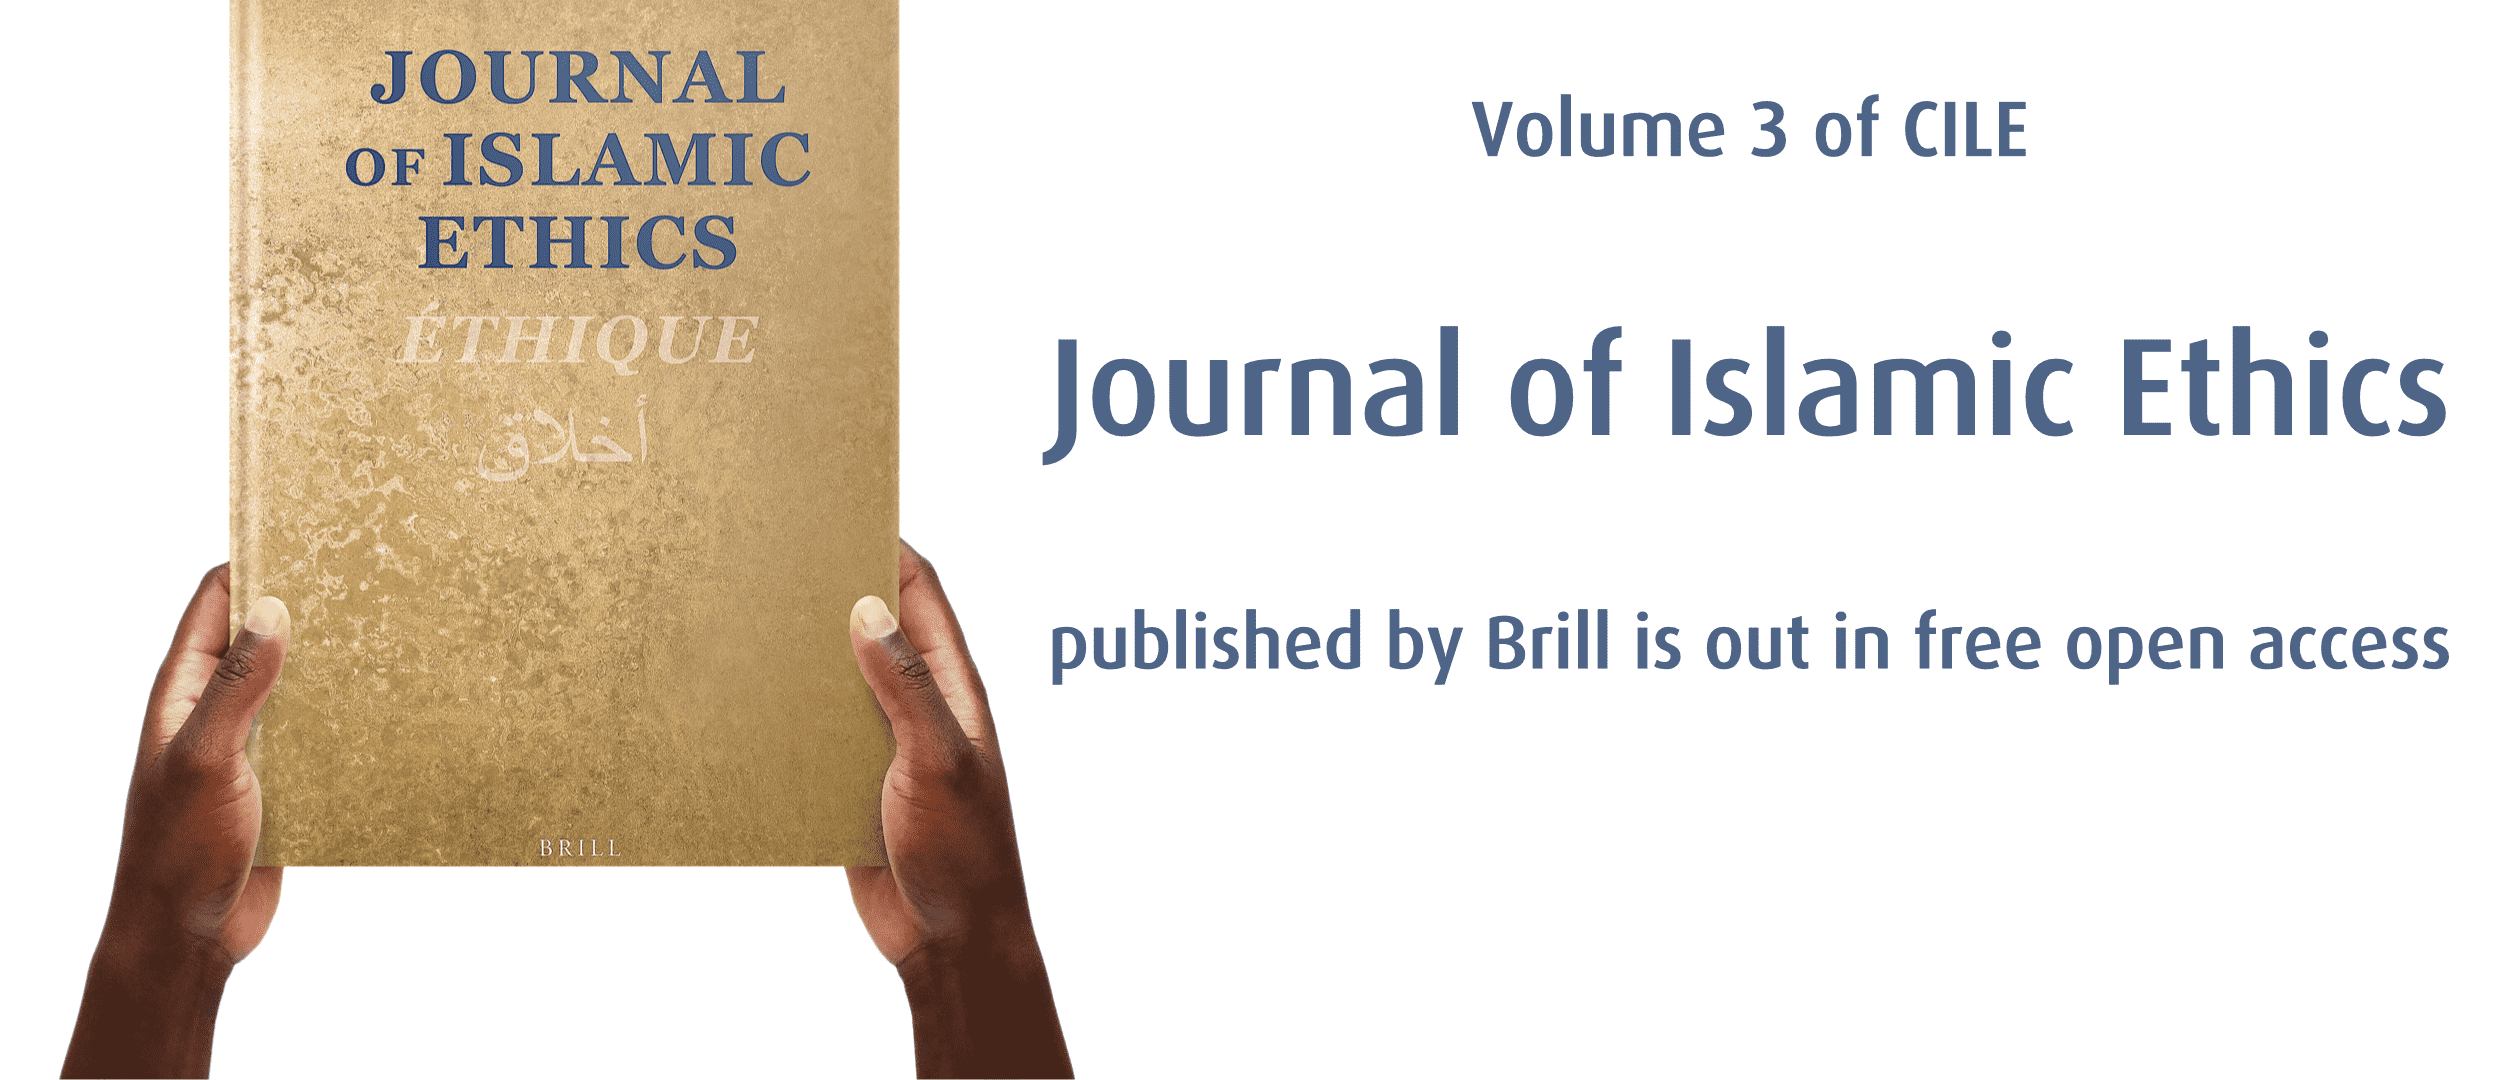 "Volume 3 of CILE ""Journal of Islamic Ethics"" published by Brill is out in free open access"